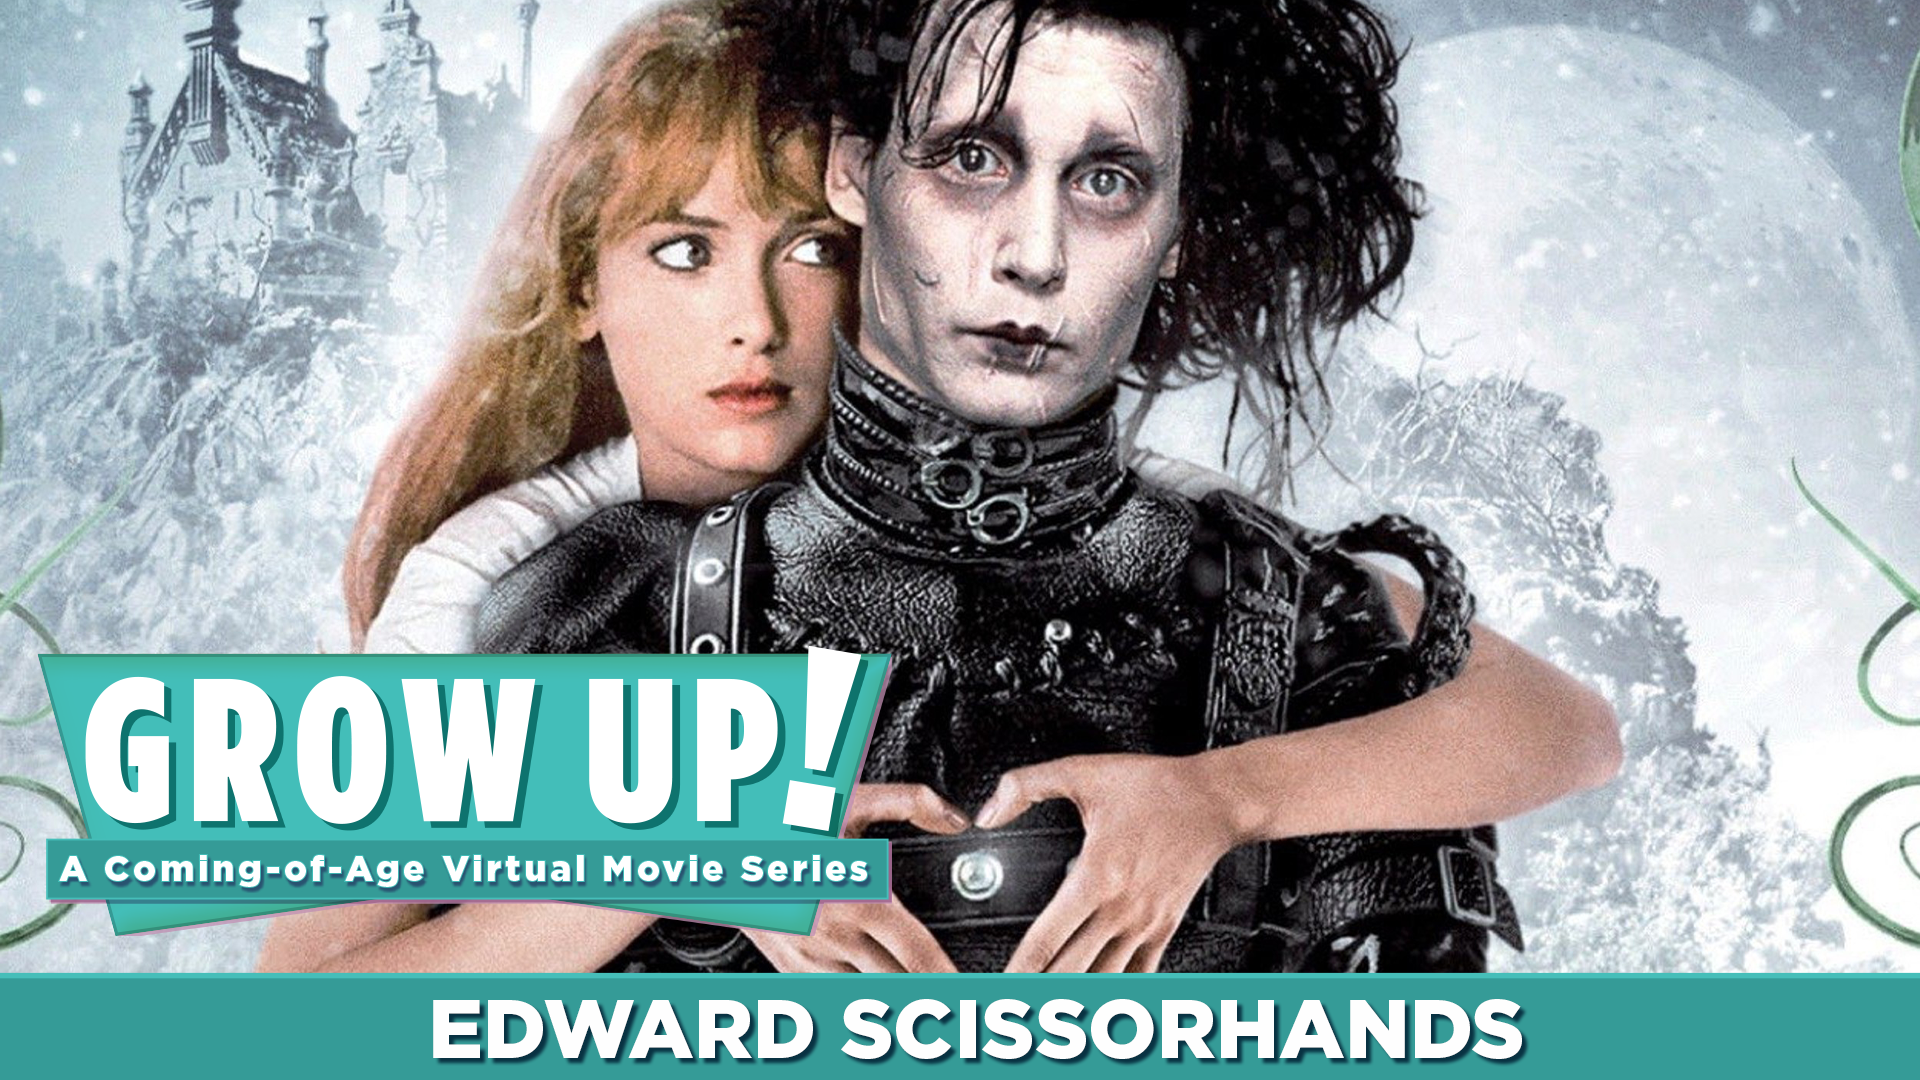 Grow Up! A Coming-of-Age Virtual Movie Series - Edward Scissorhands